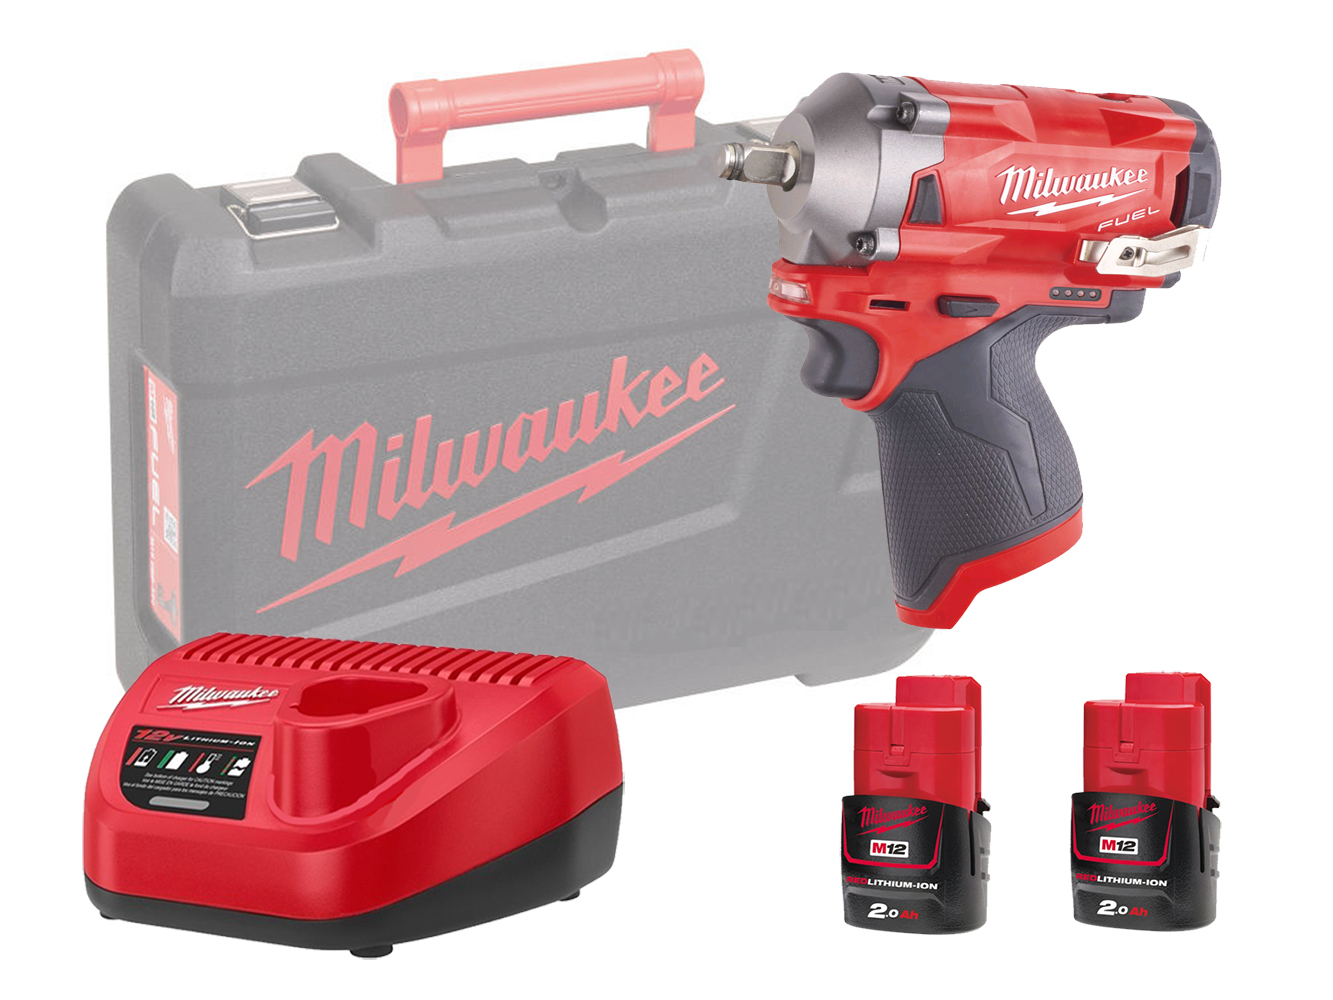 "MILWAUKEE 12V FUEL COMPACT IMPACT WRENCH 1/2"" - M12FIWF12 - 2.0AH PACK"